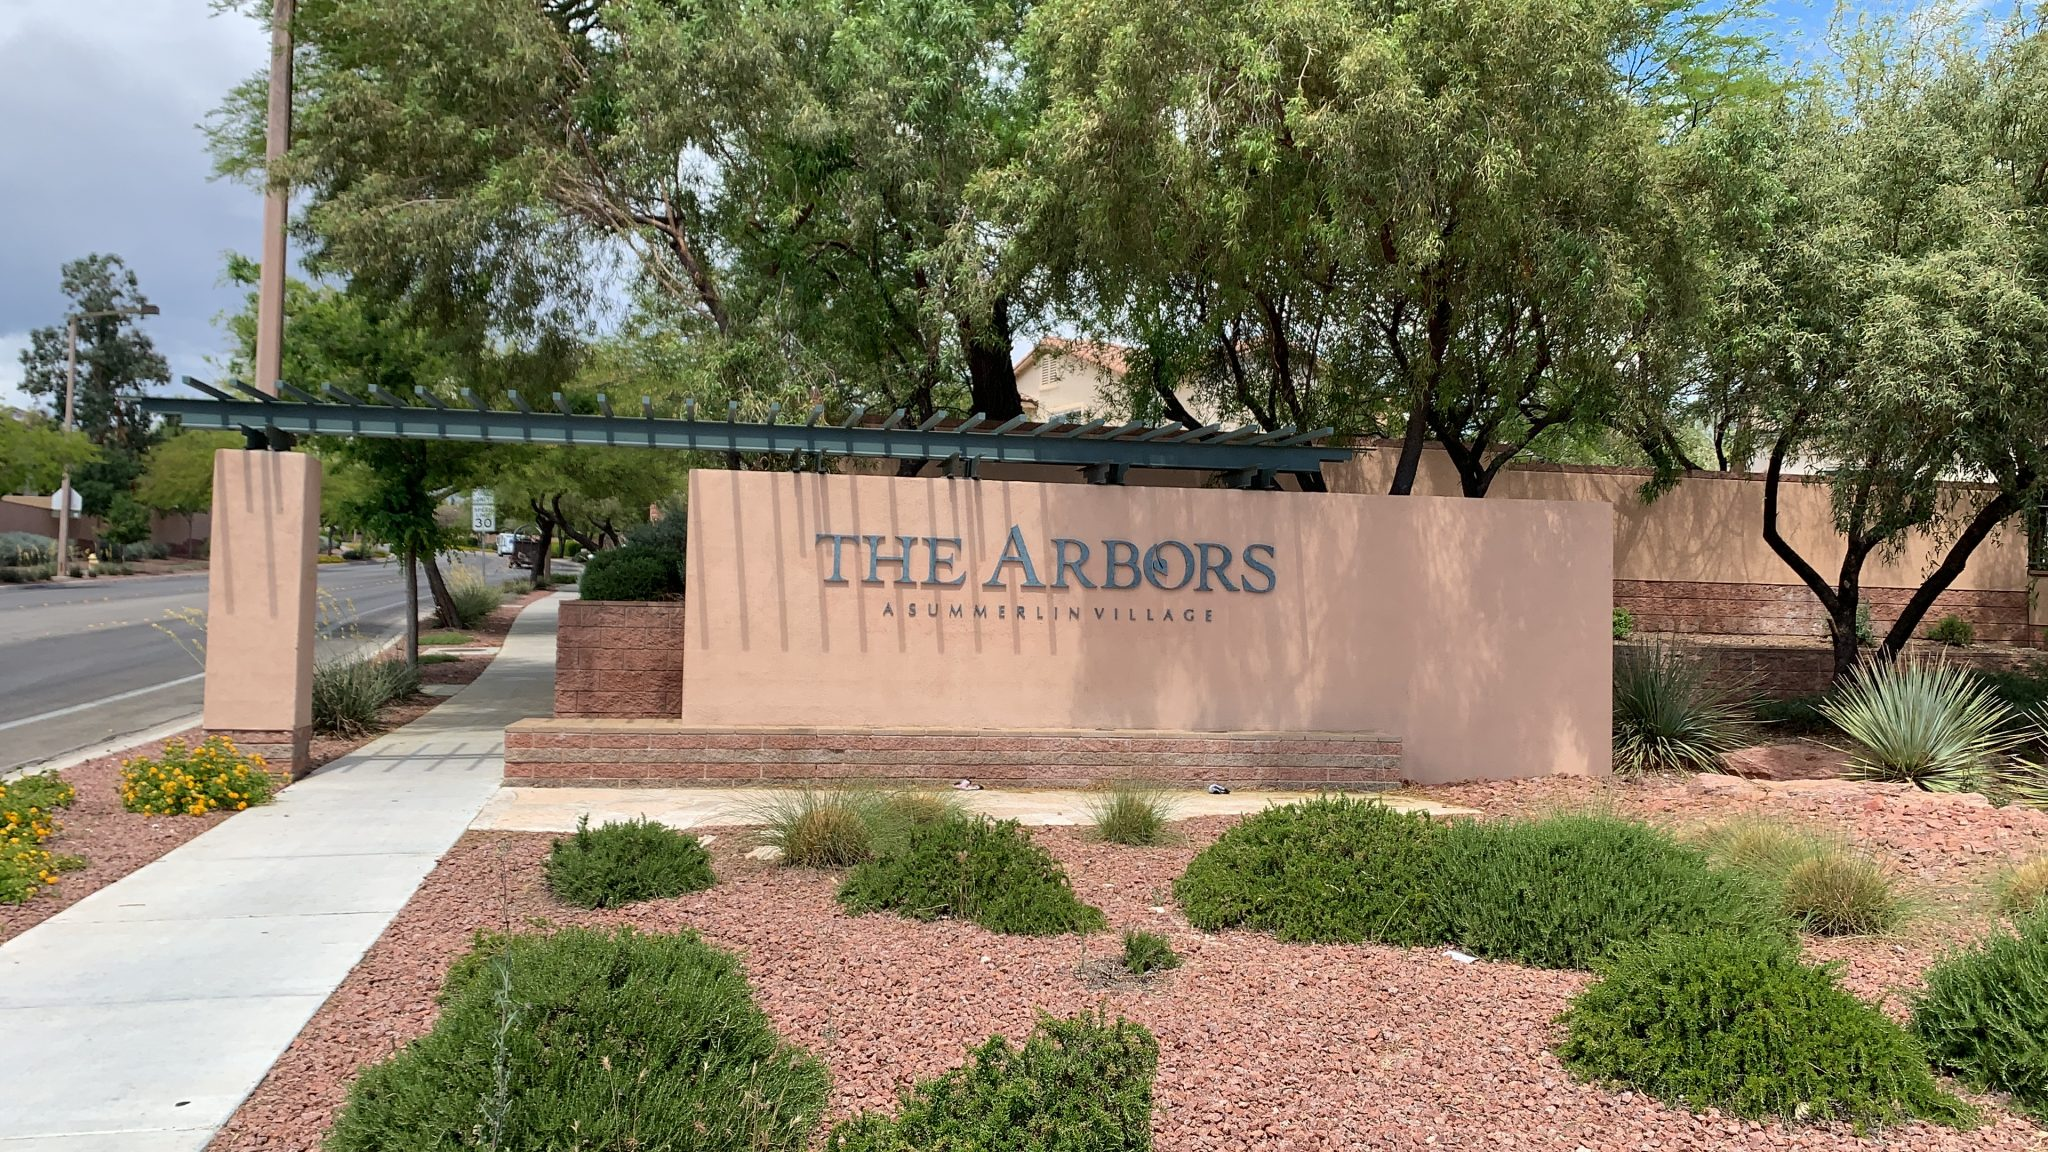 The Arbors Village